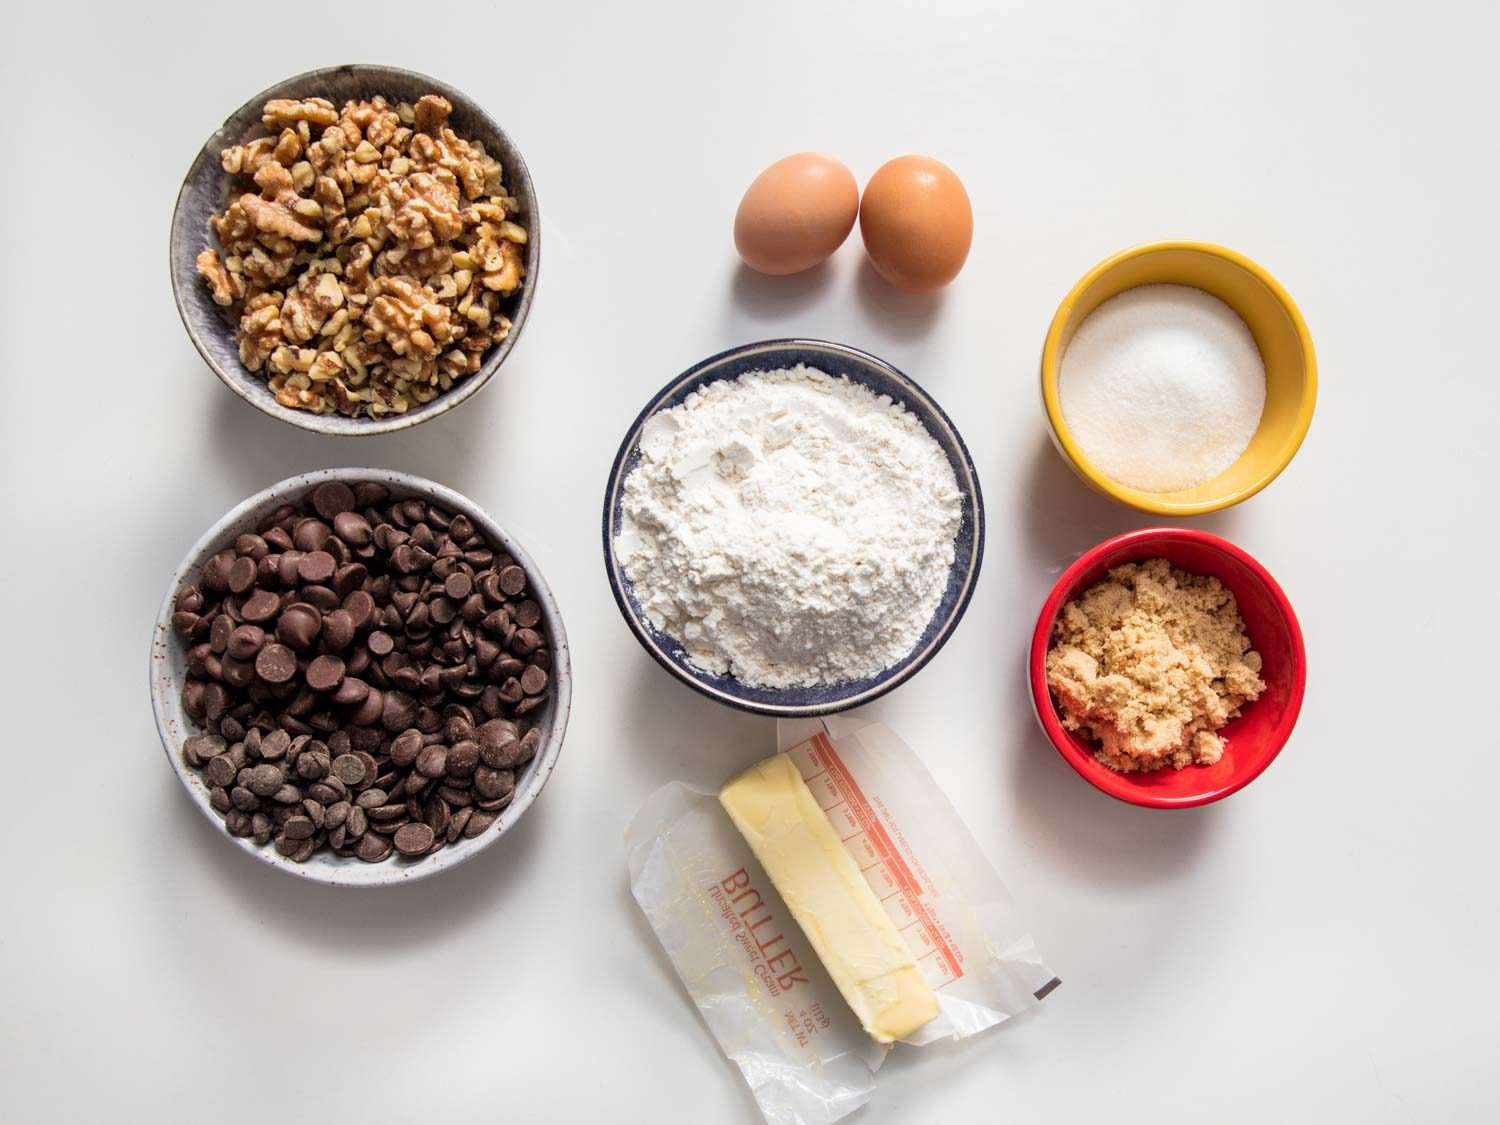 Ingredients for Levain Bakery-style super thick chocolate chip cookies.